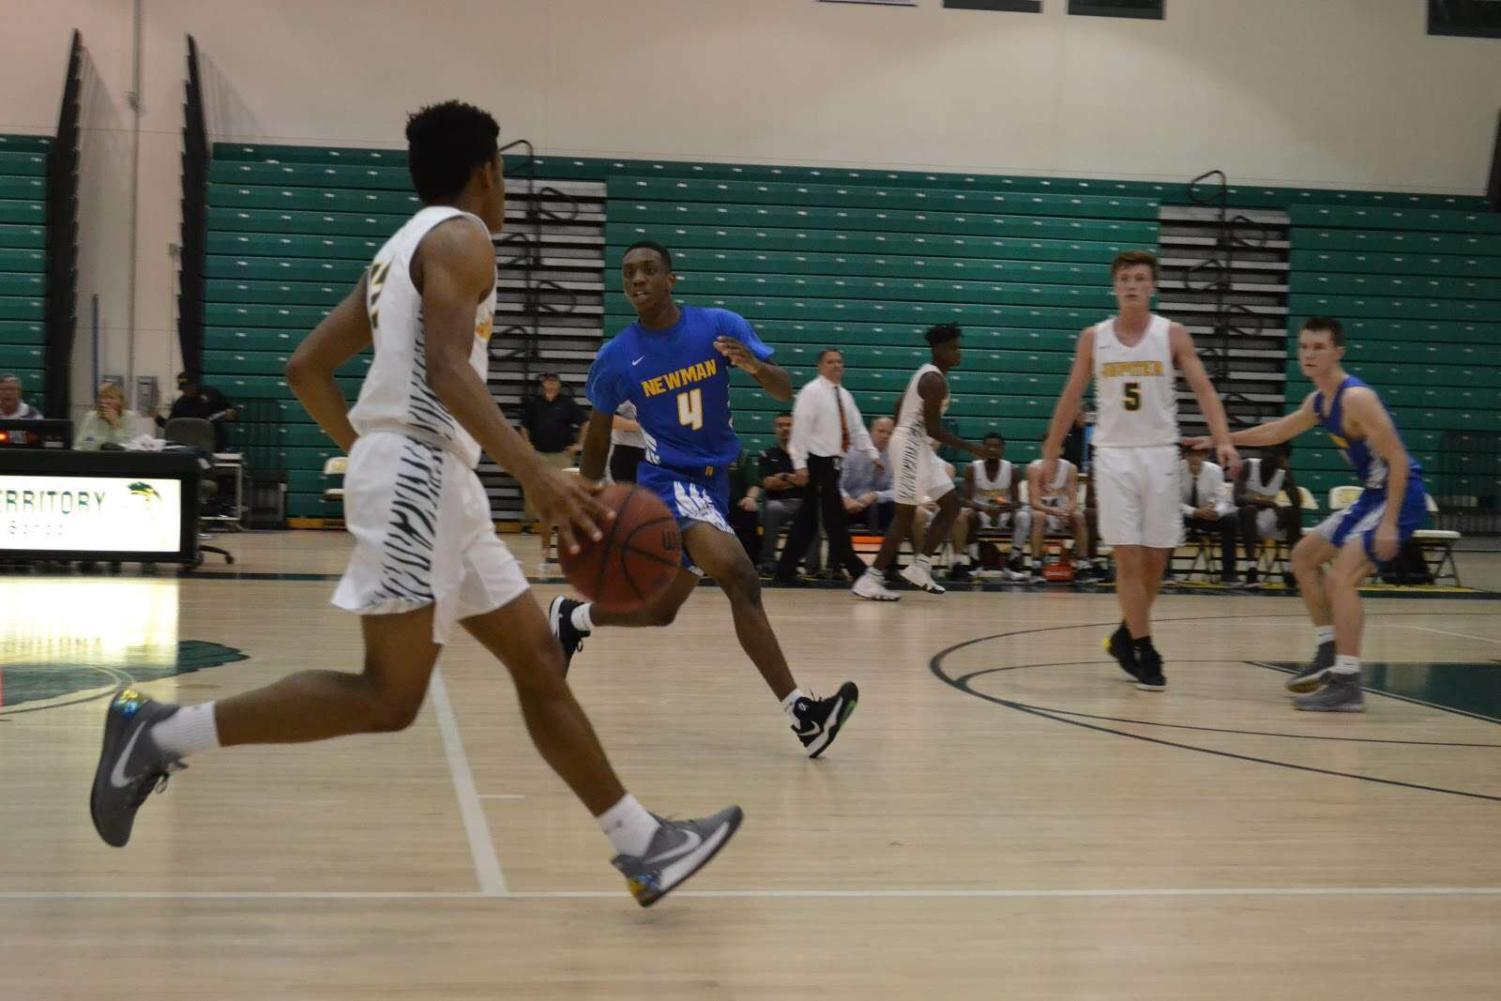 Junior Jaquel Stroman (left) and senior Trent Webb (right) playing in the first game of the season.